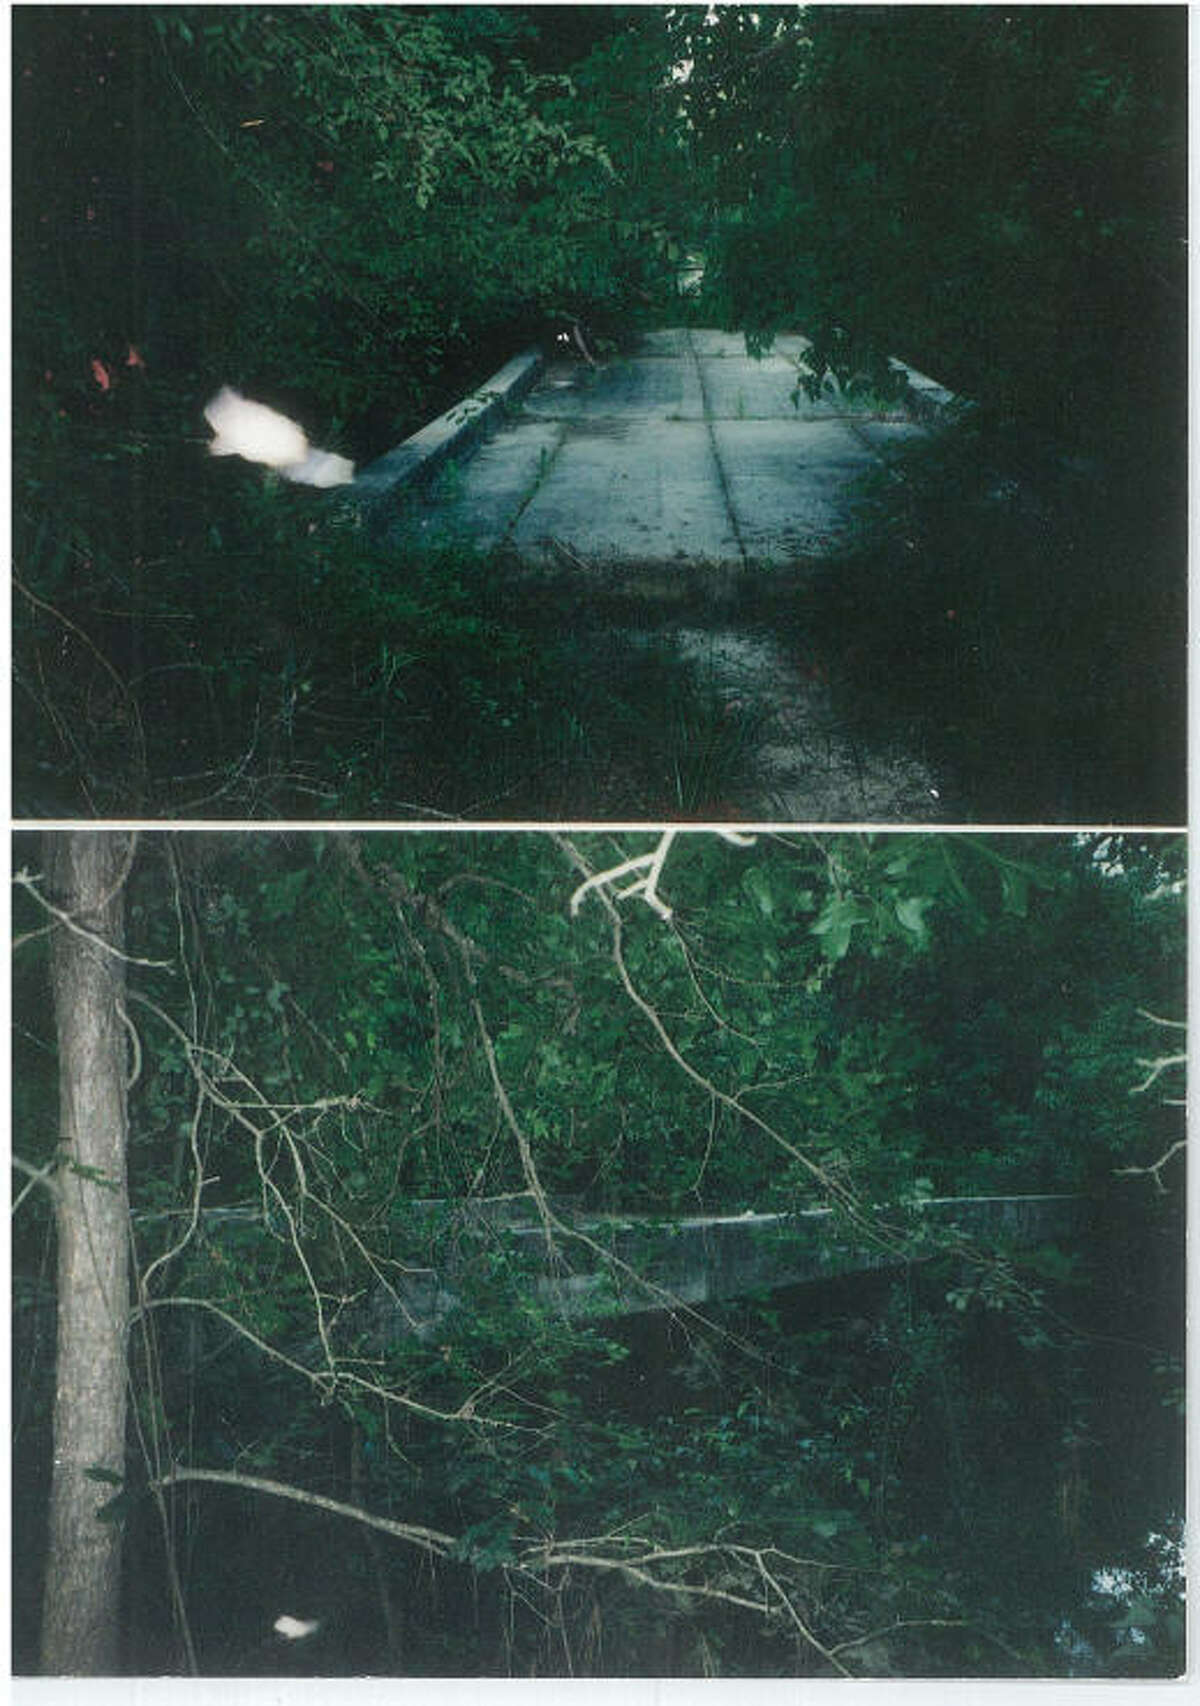 Two light phenomena photographed by Riggs, the lights did not show up until the film was developed he said, leaving him and the photo technician in the dark about what it was.This picture forms part of the evidence Riggs will present in his class